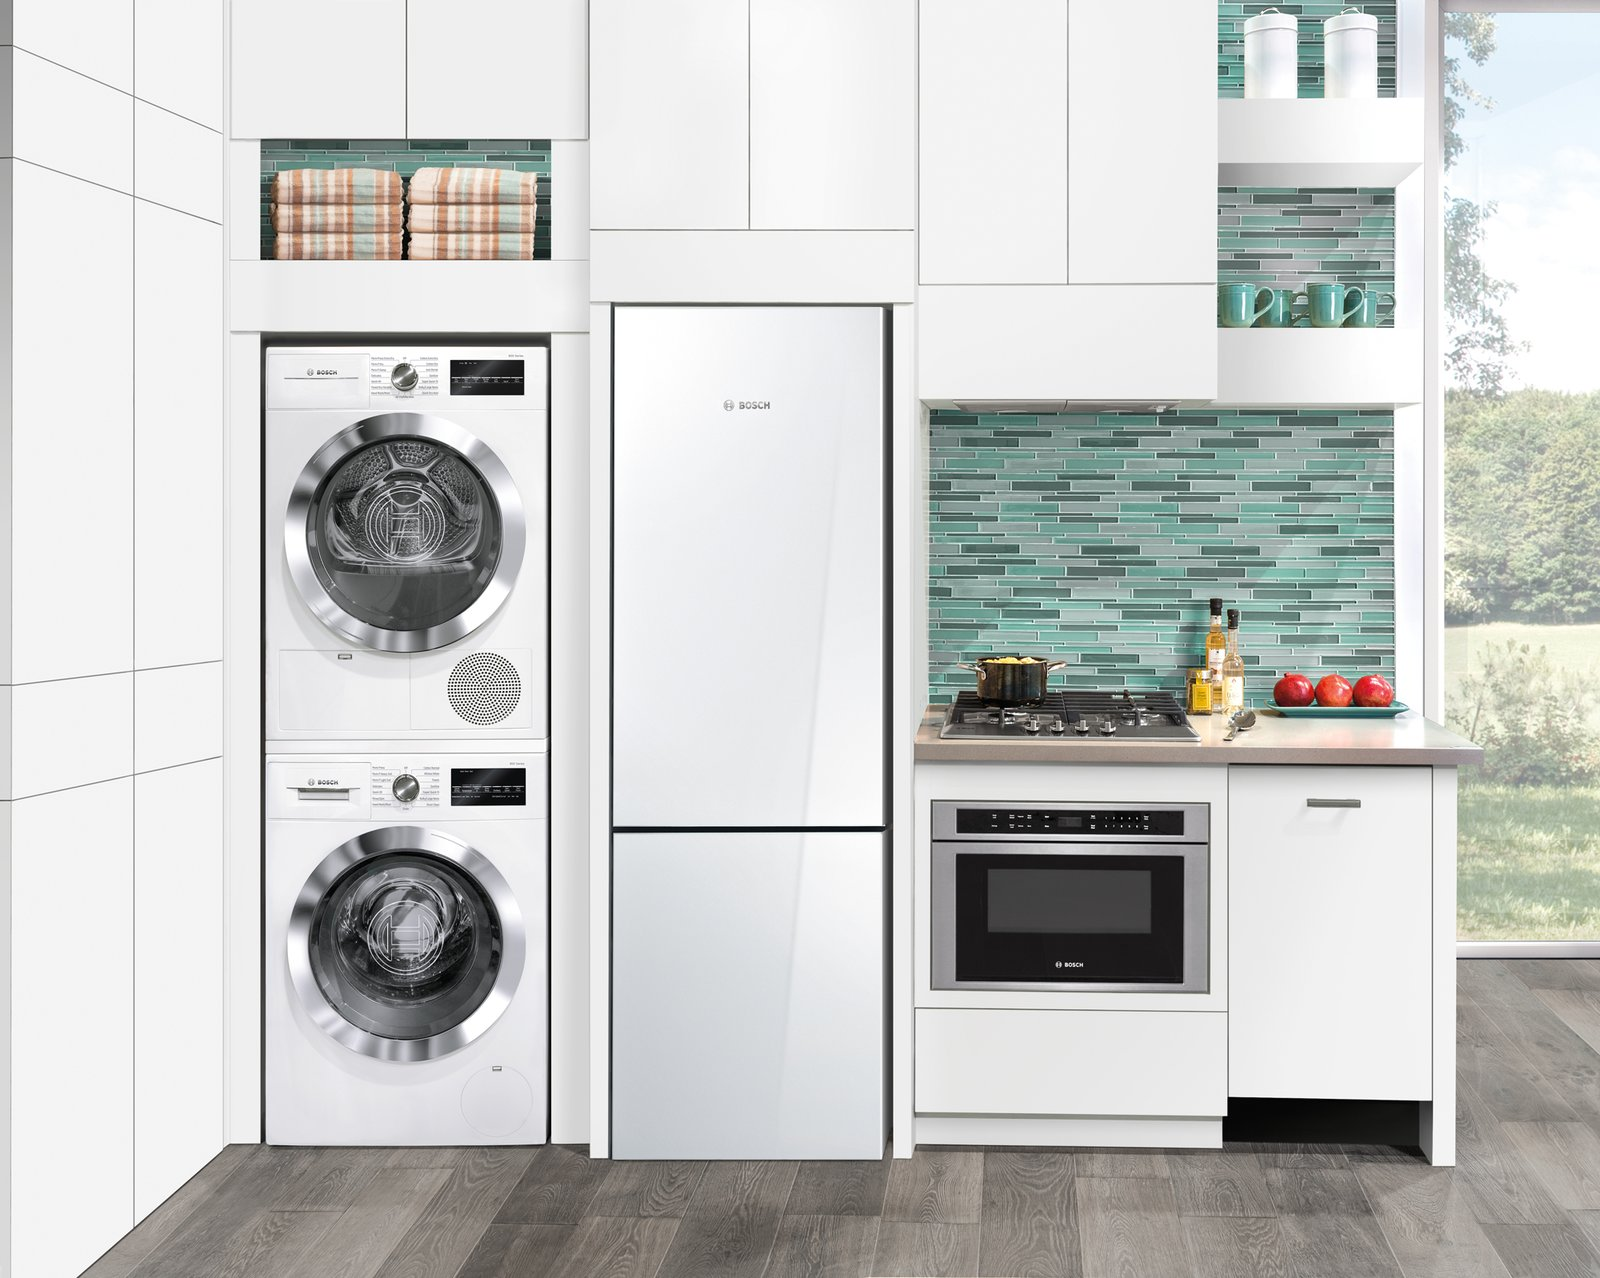 Uncategorized Bosh Kitchen Appliances boschs streamlined kitchen and laundry appliances are made for small spaces photo 1 of 6